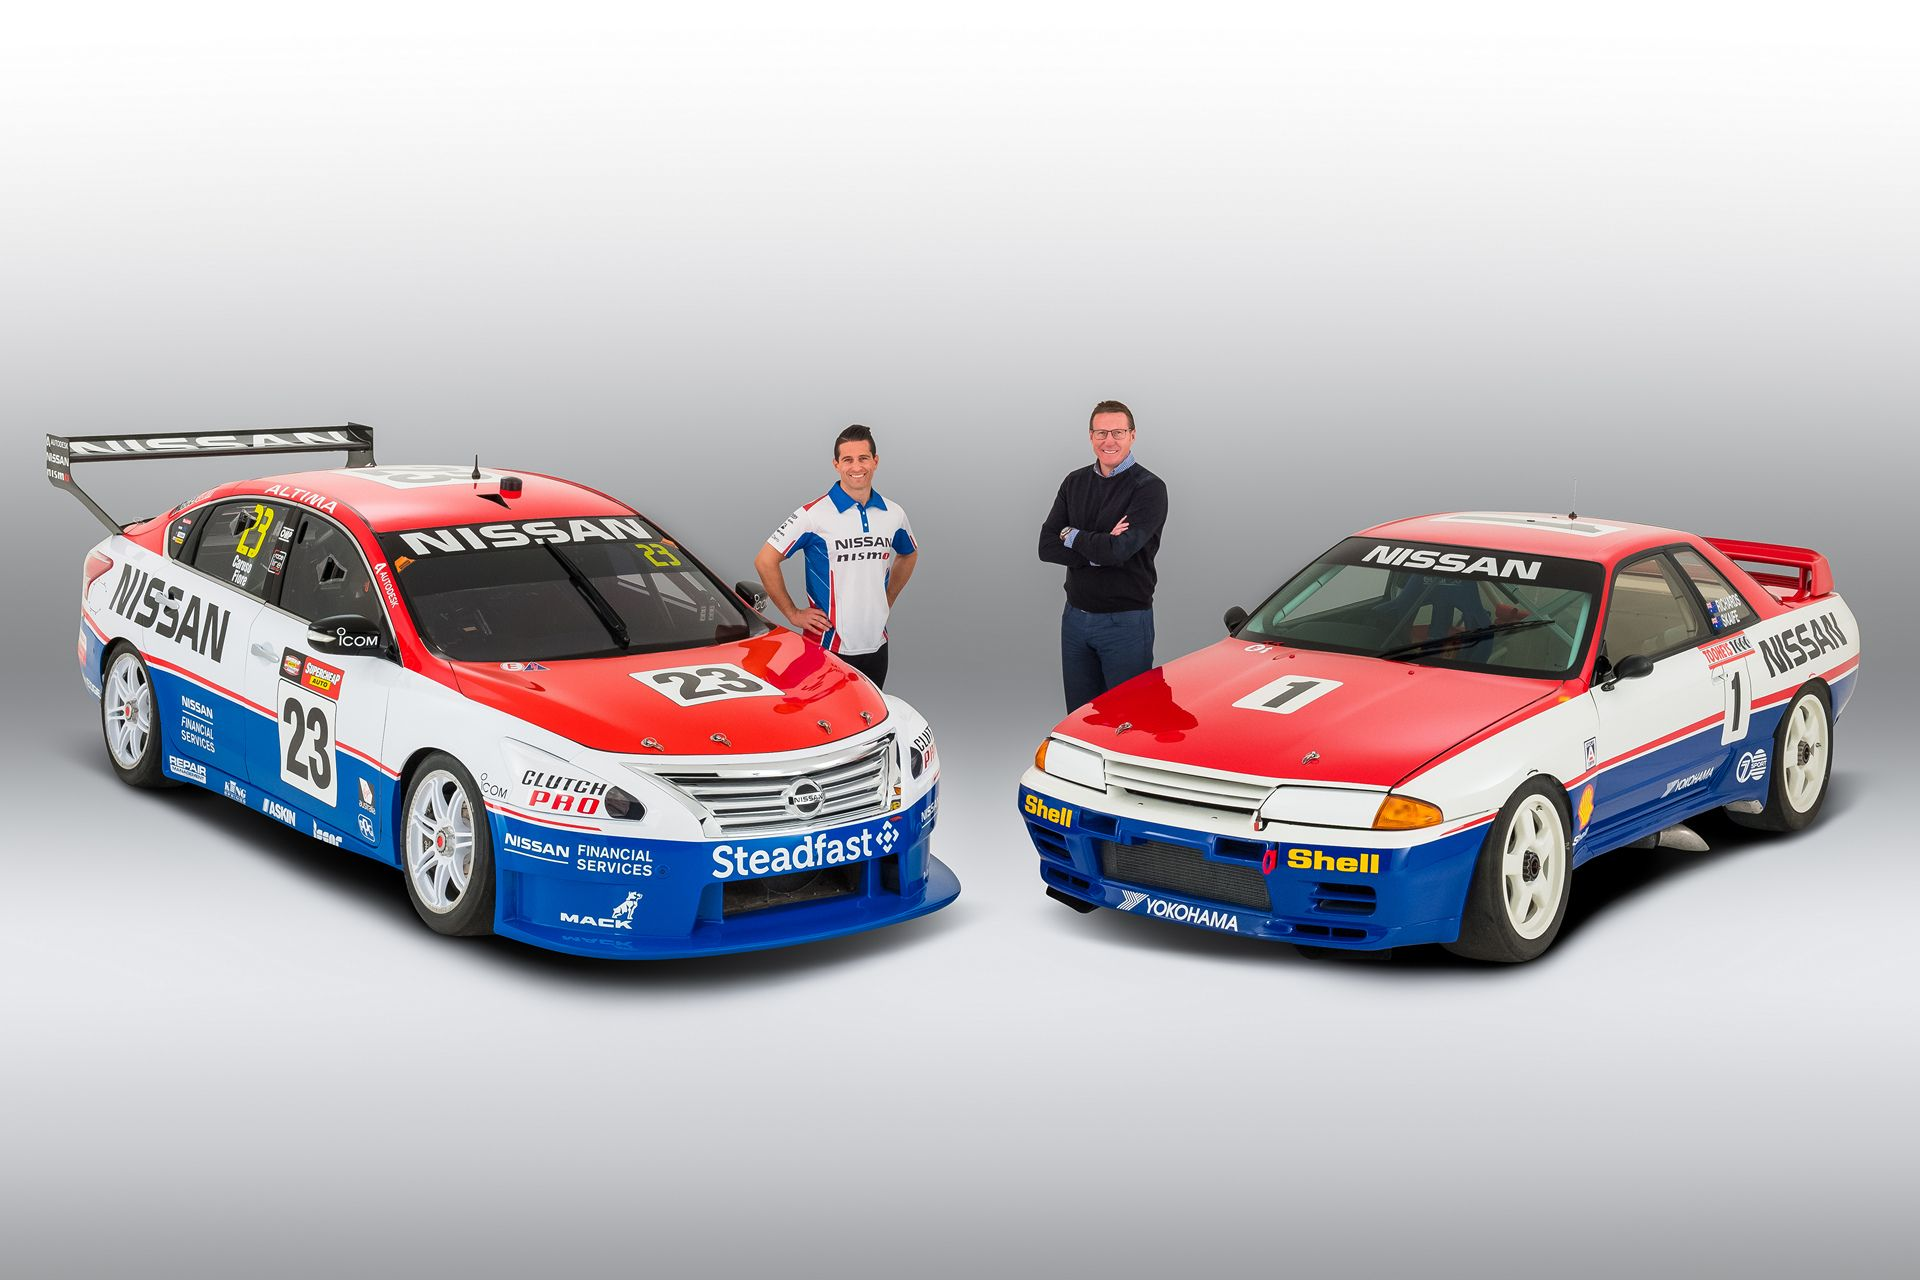 23 Nissan To Race In Colors Of 1991 Race Winning Gt R R32 At This Year S Bathurst 1000 Nissan Will Celebrate 25 Years Since Its First Ba Nissan Bathurst Sedan [ 1280 x 1920 Pixel ]